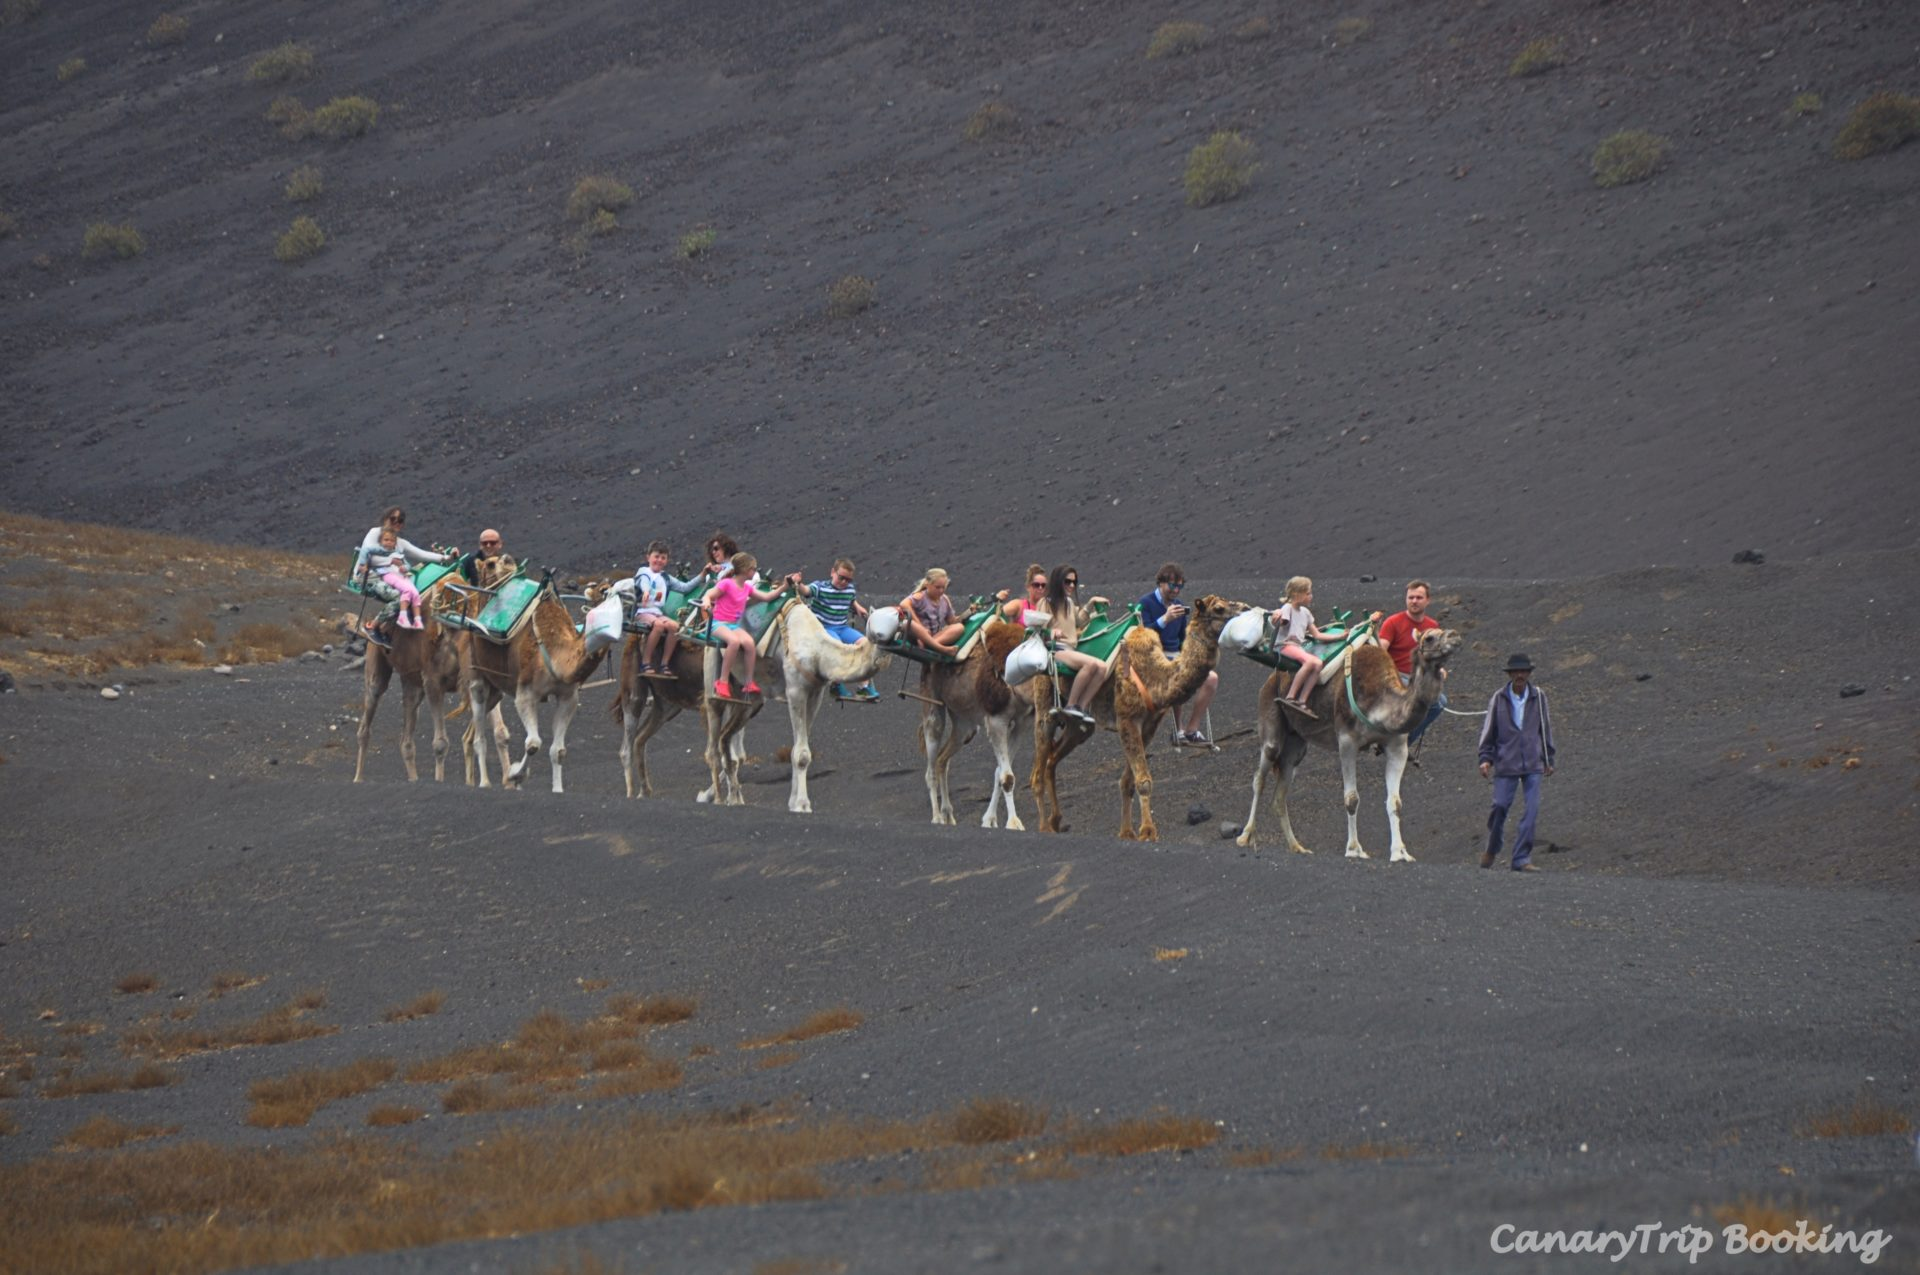 paseo-camellos-timanfaya-canary-trip-booking